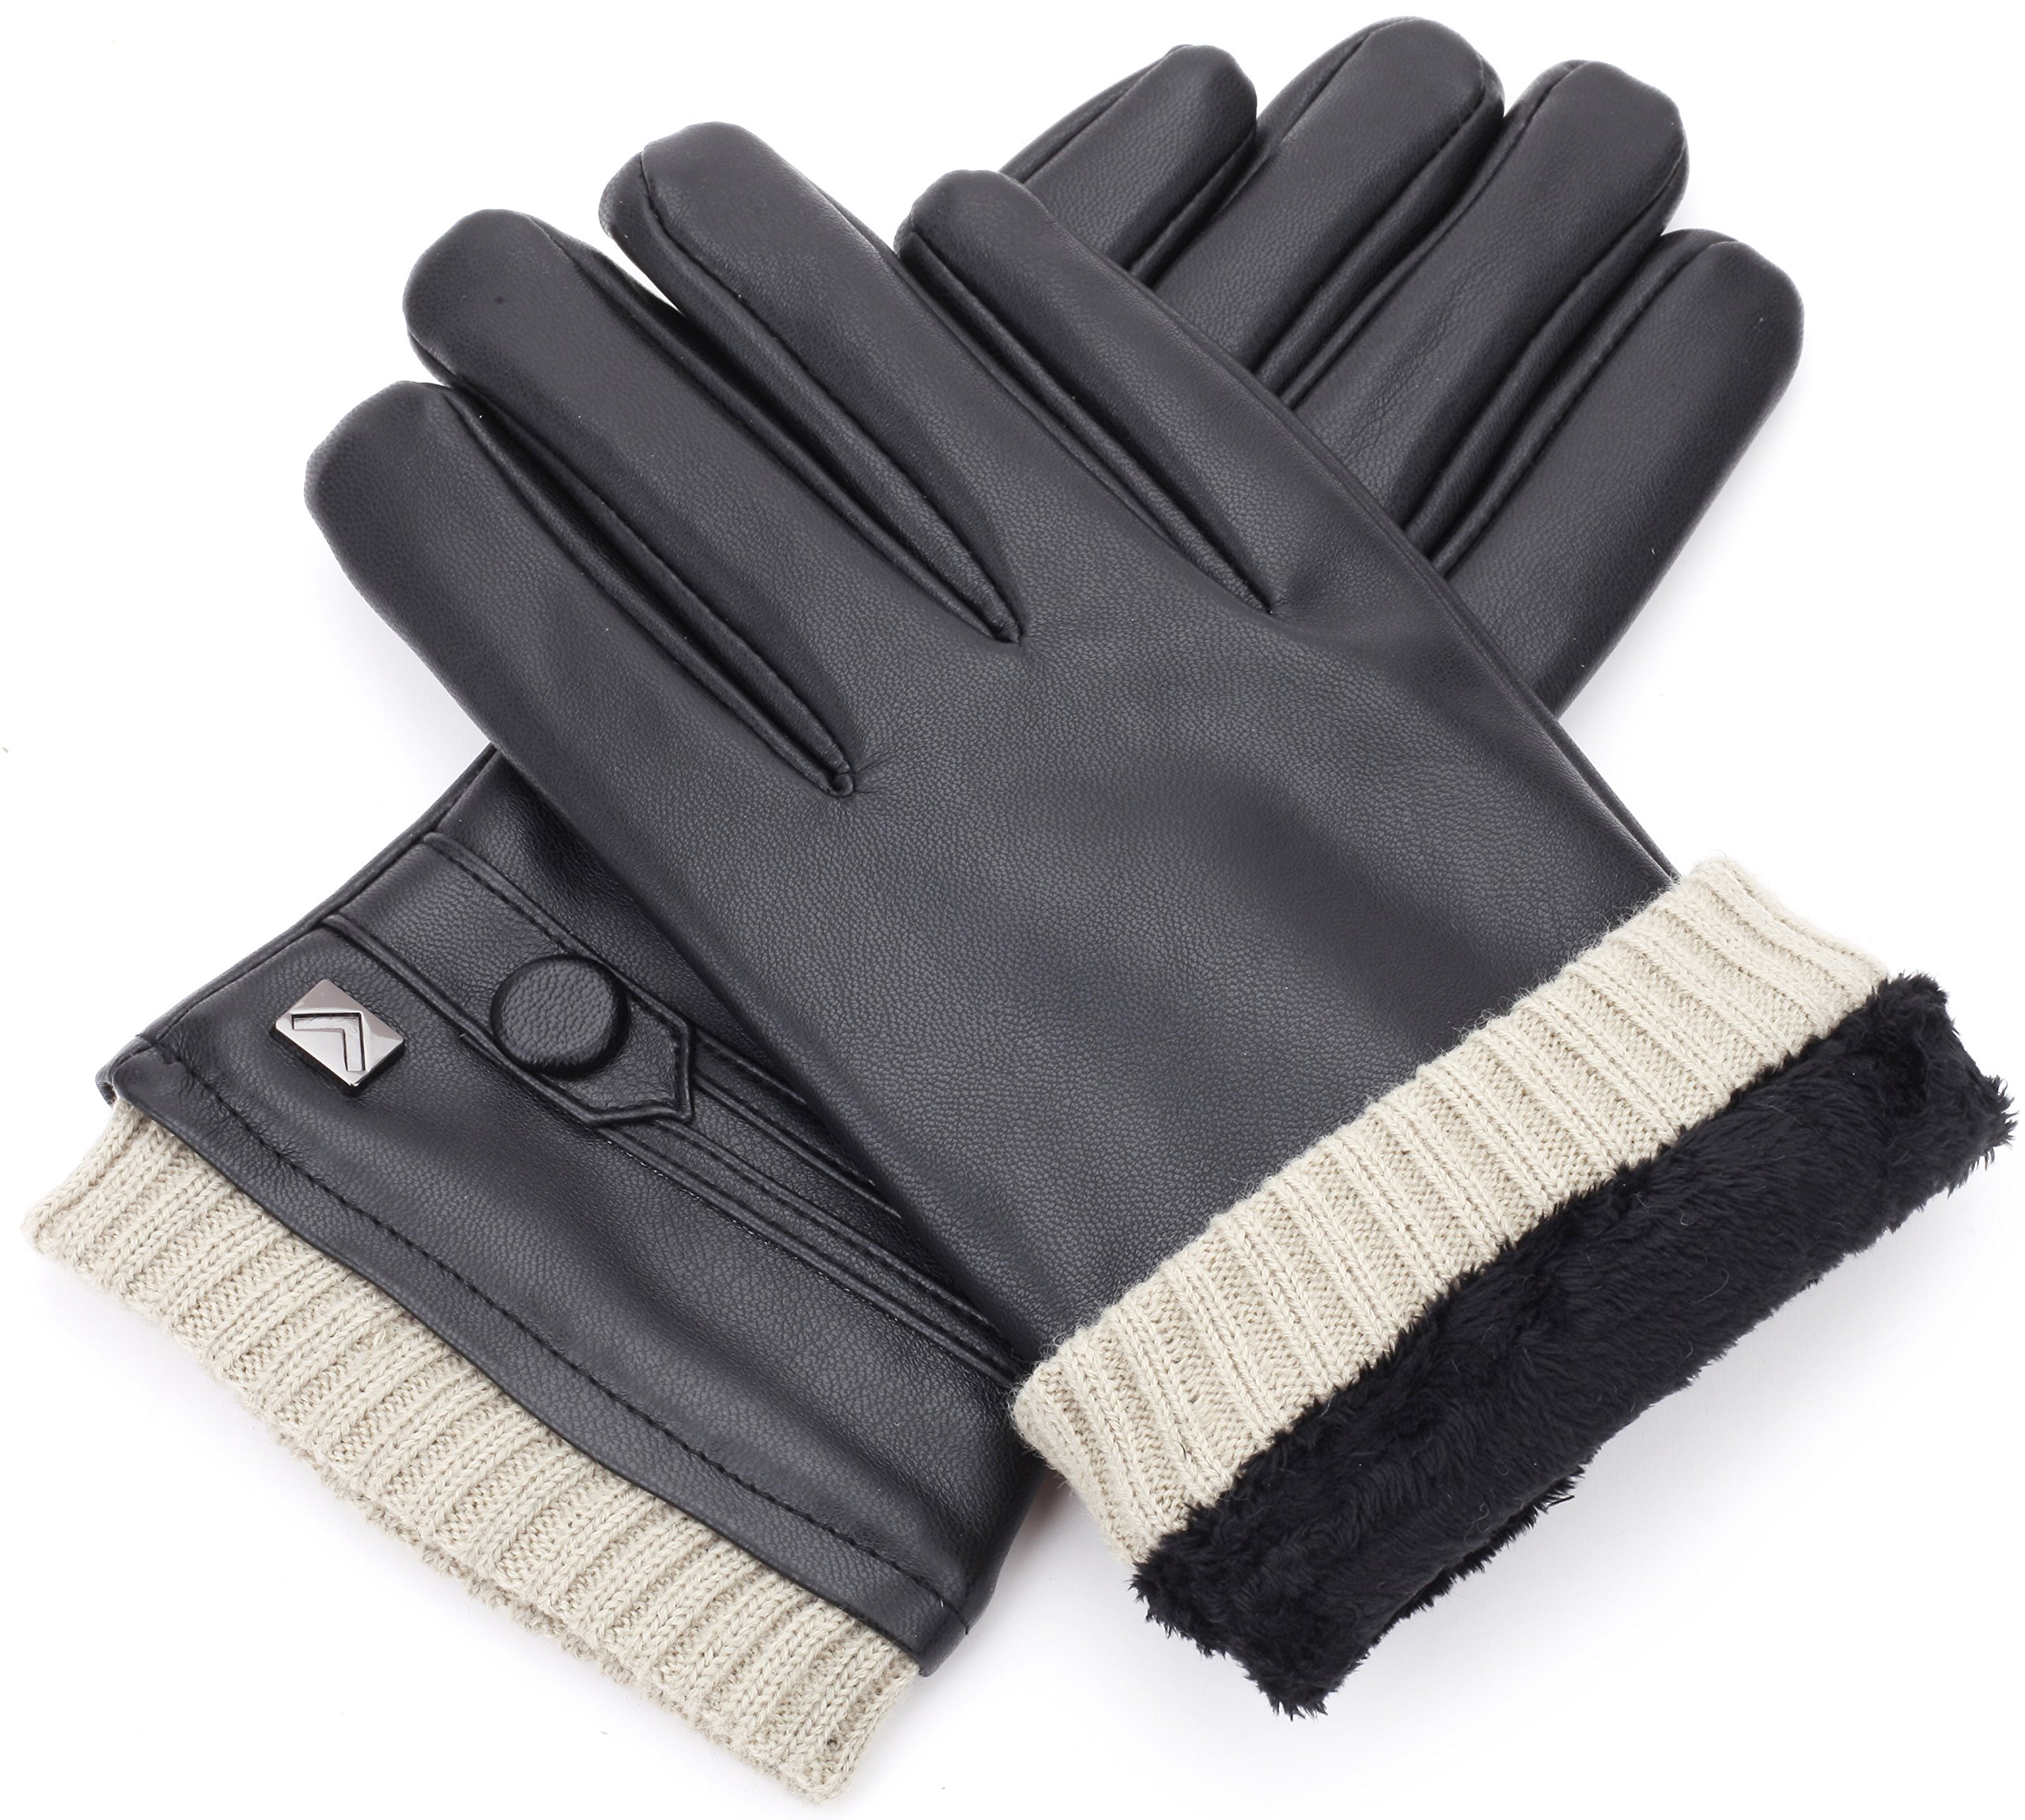 Gallery Seven Mens Faux Leather Warm Winter Gloves - Touch Screen Texting Glove - Gift Wrapped - Black Fine Button Style - Small by Gallery Seven (Image #4)